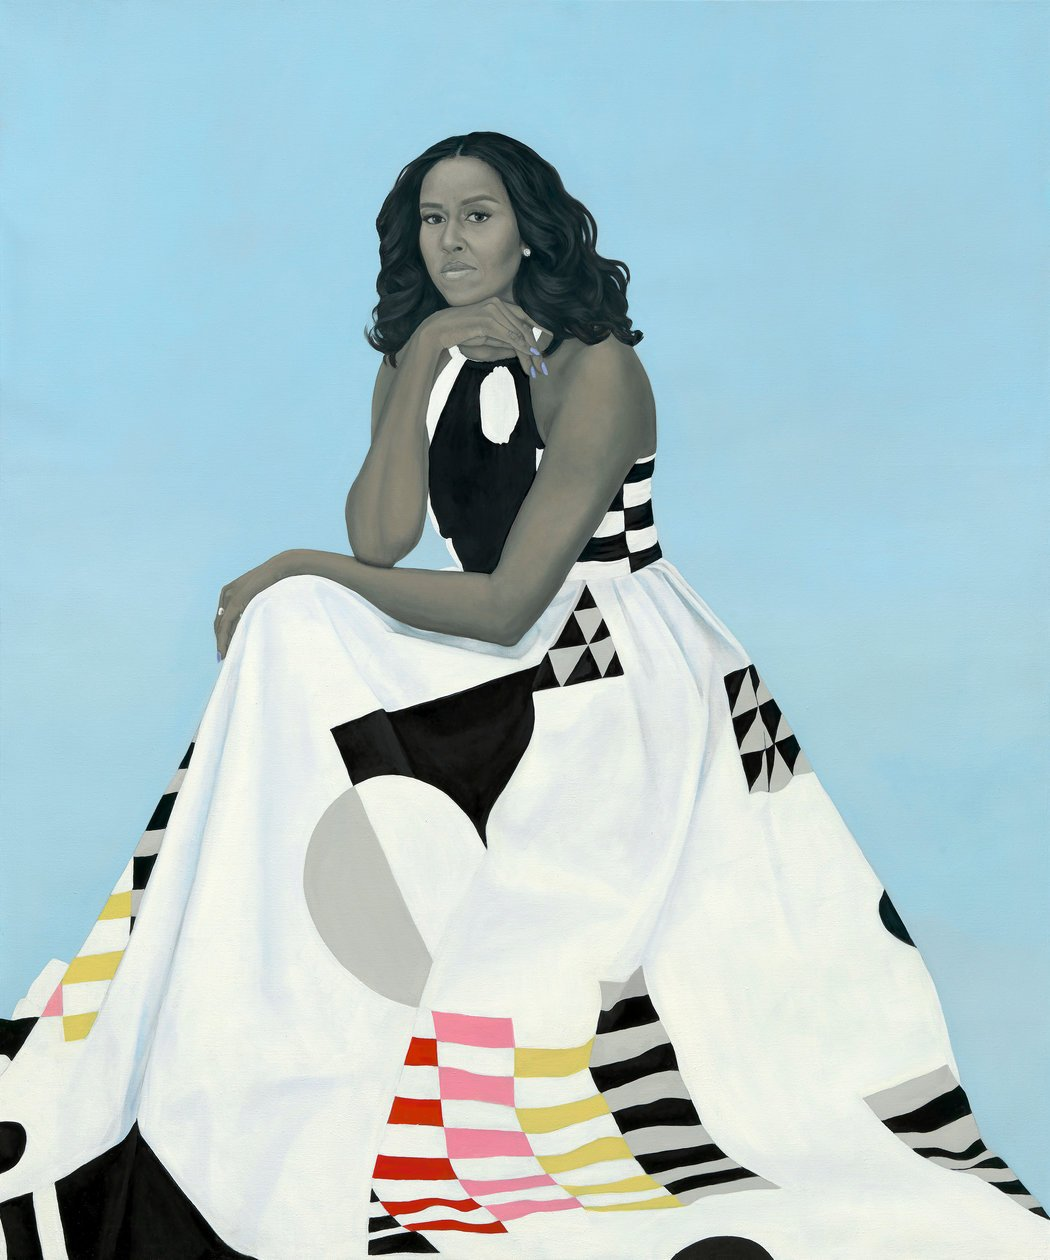 Portrait By: Amy Sherald